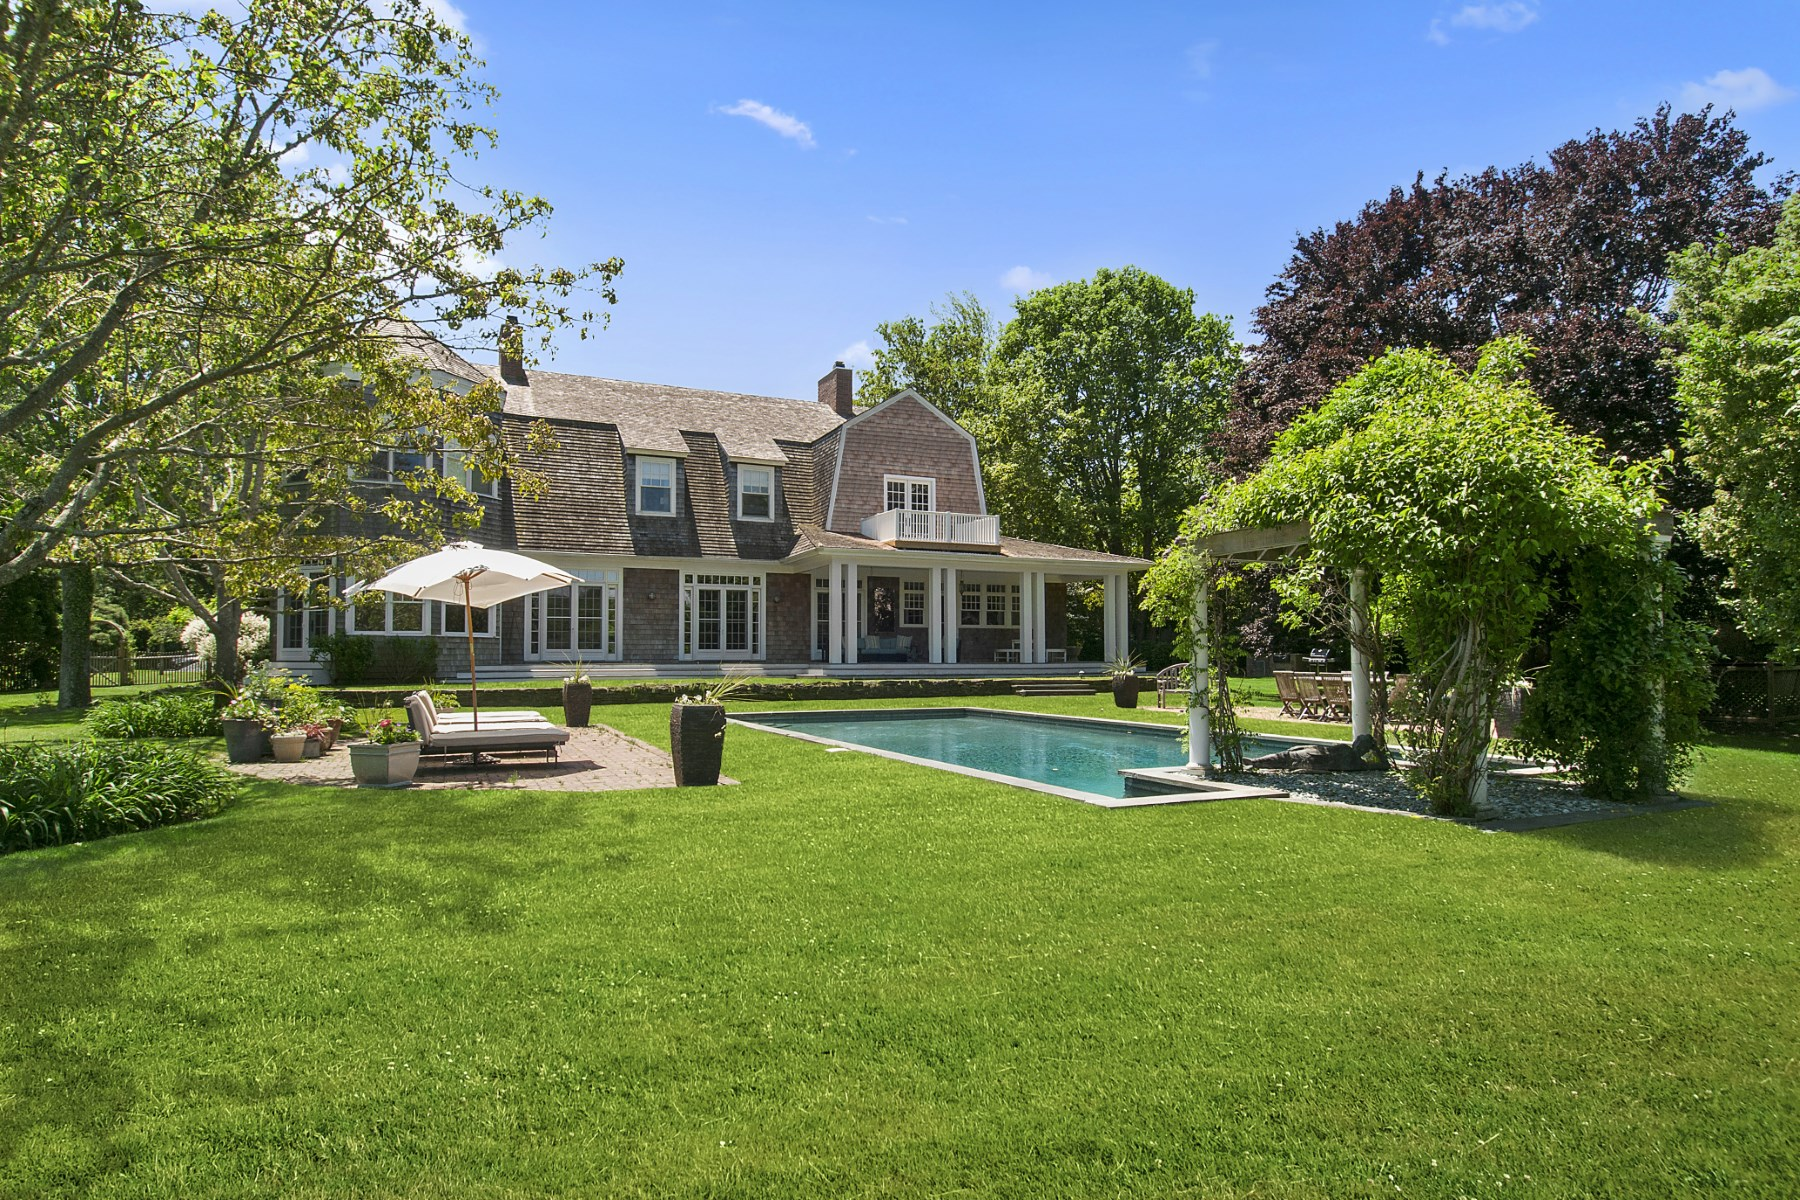 Villa per Vendita alle ore Egypt Lane Compound East Hampton, New York, 11937 Stati Uniti